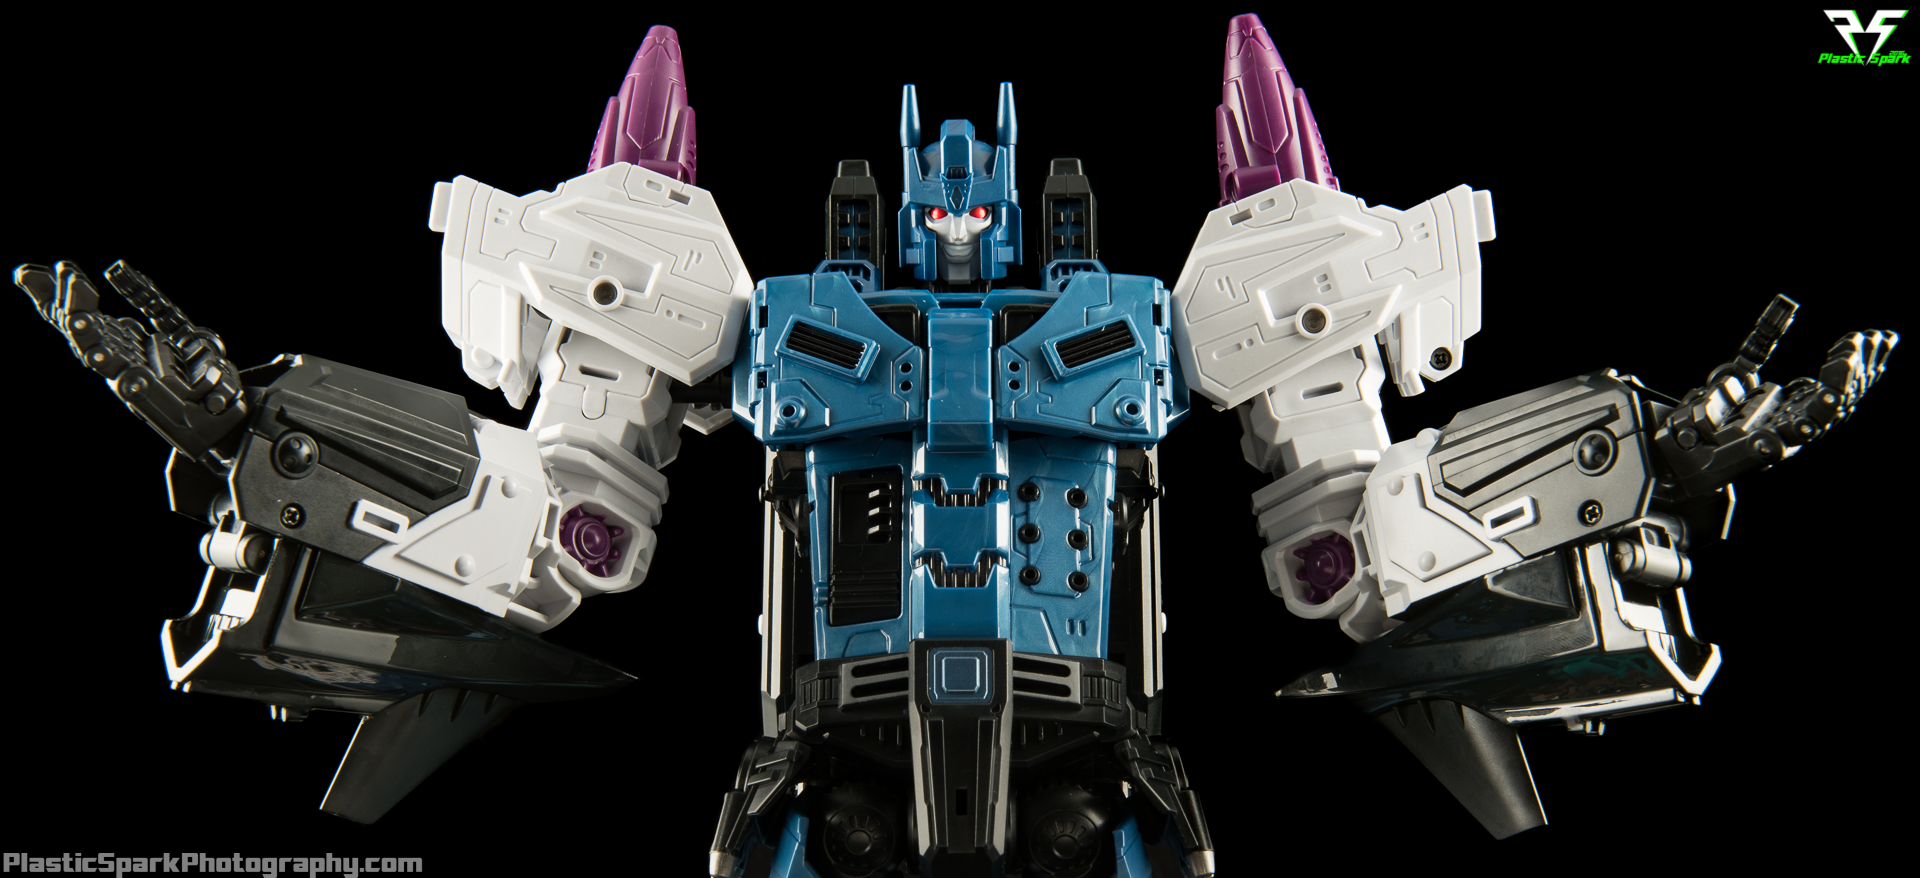 Mastemind-Creations-R17-Carnifex-(48-of-54).png